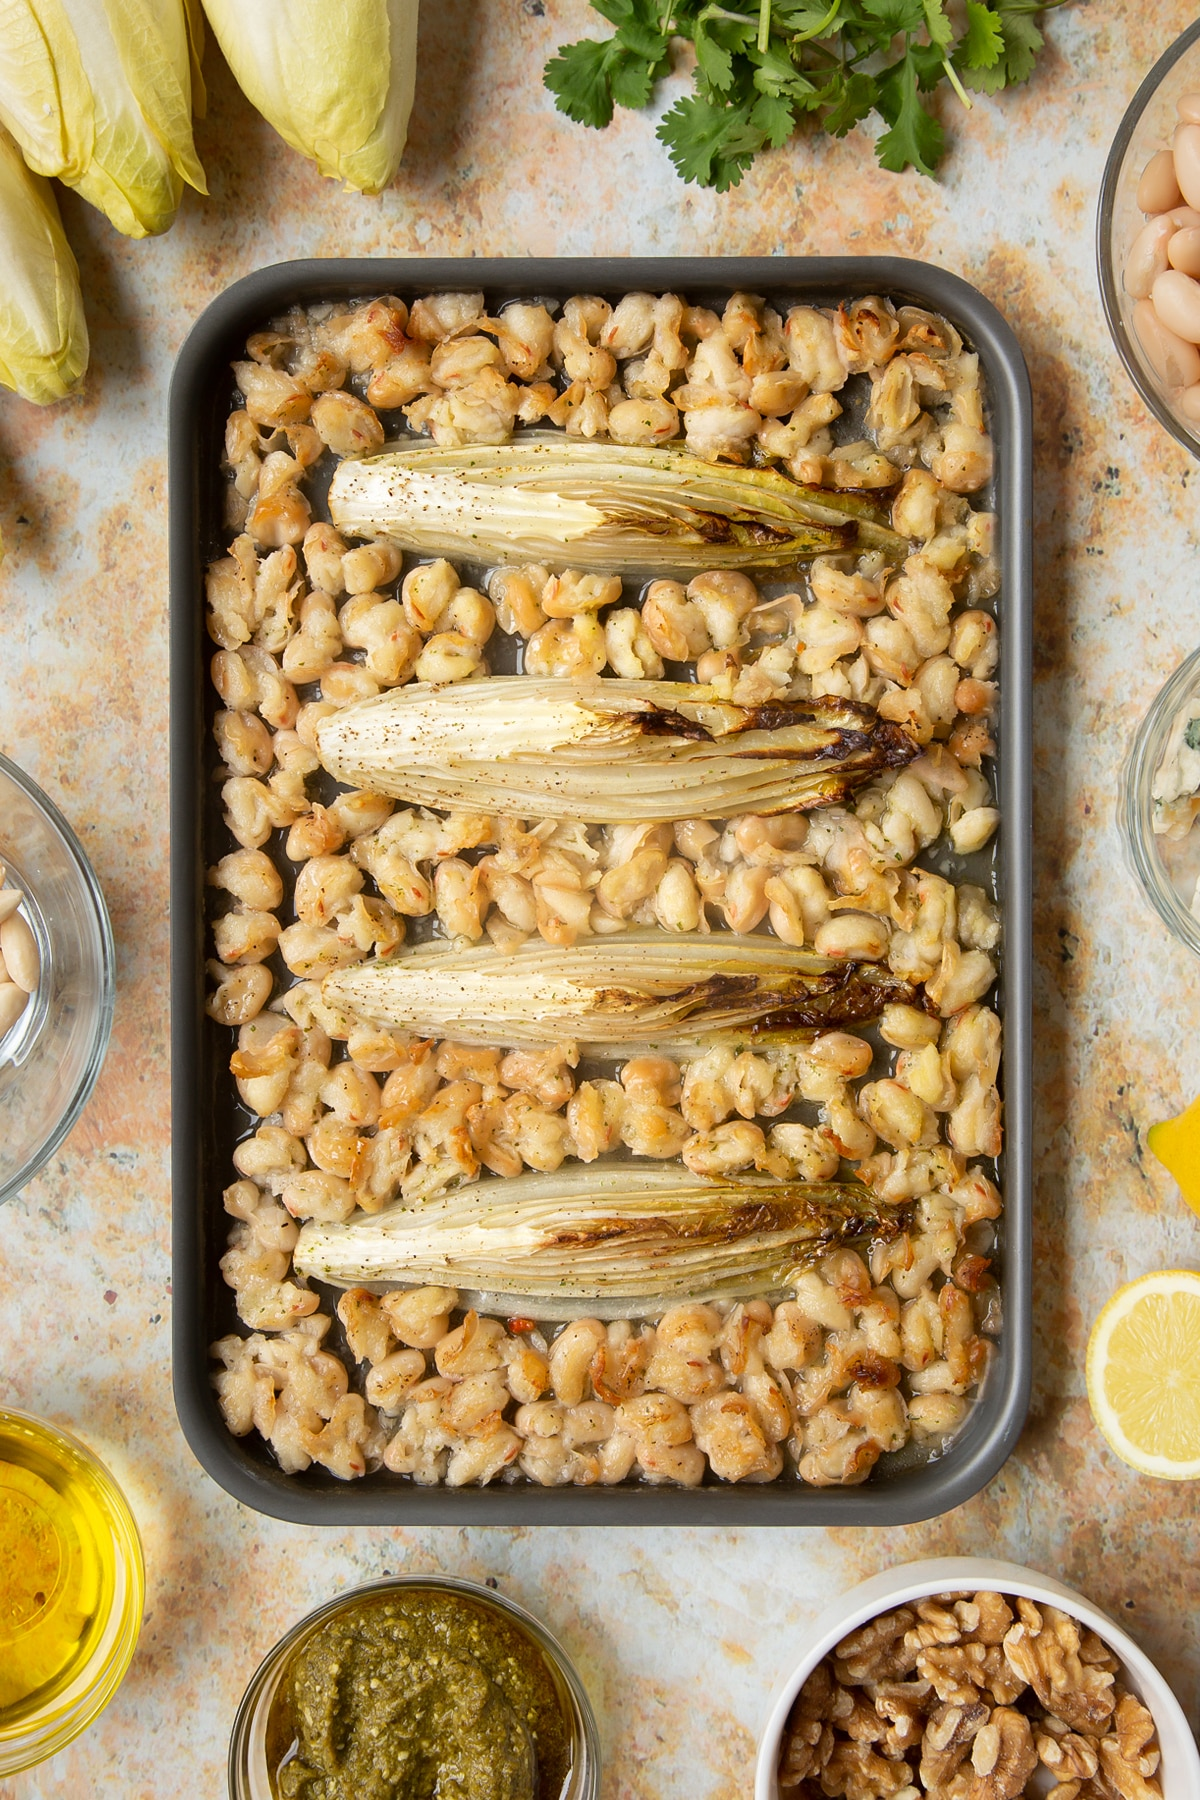 Braised chicory and cannellini beans on a tray.